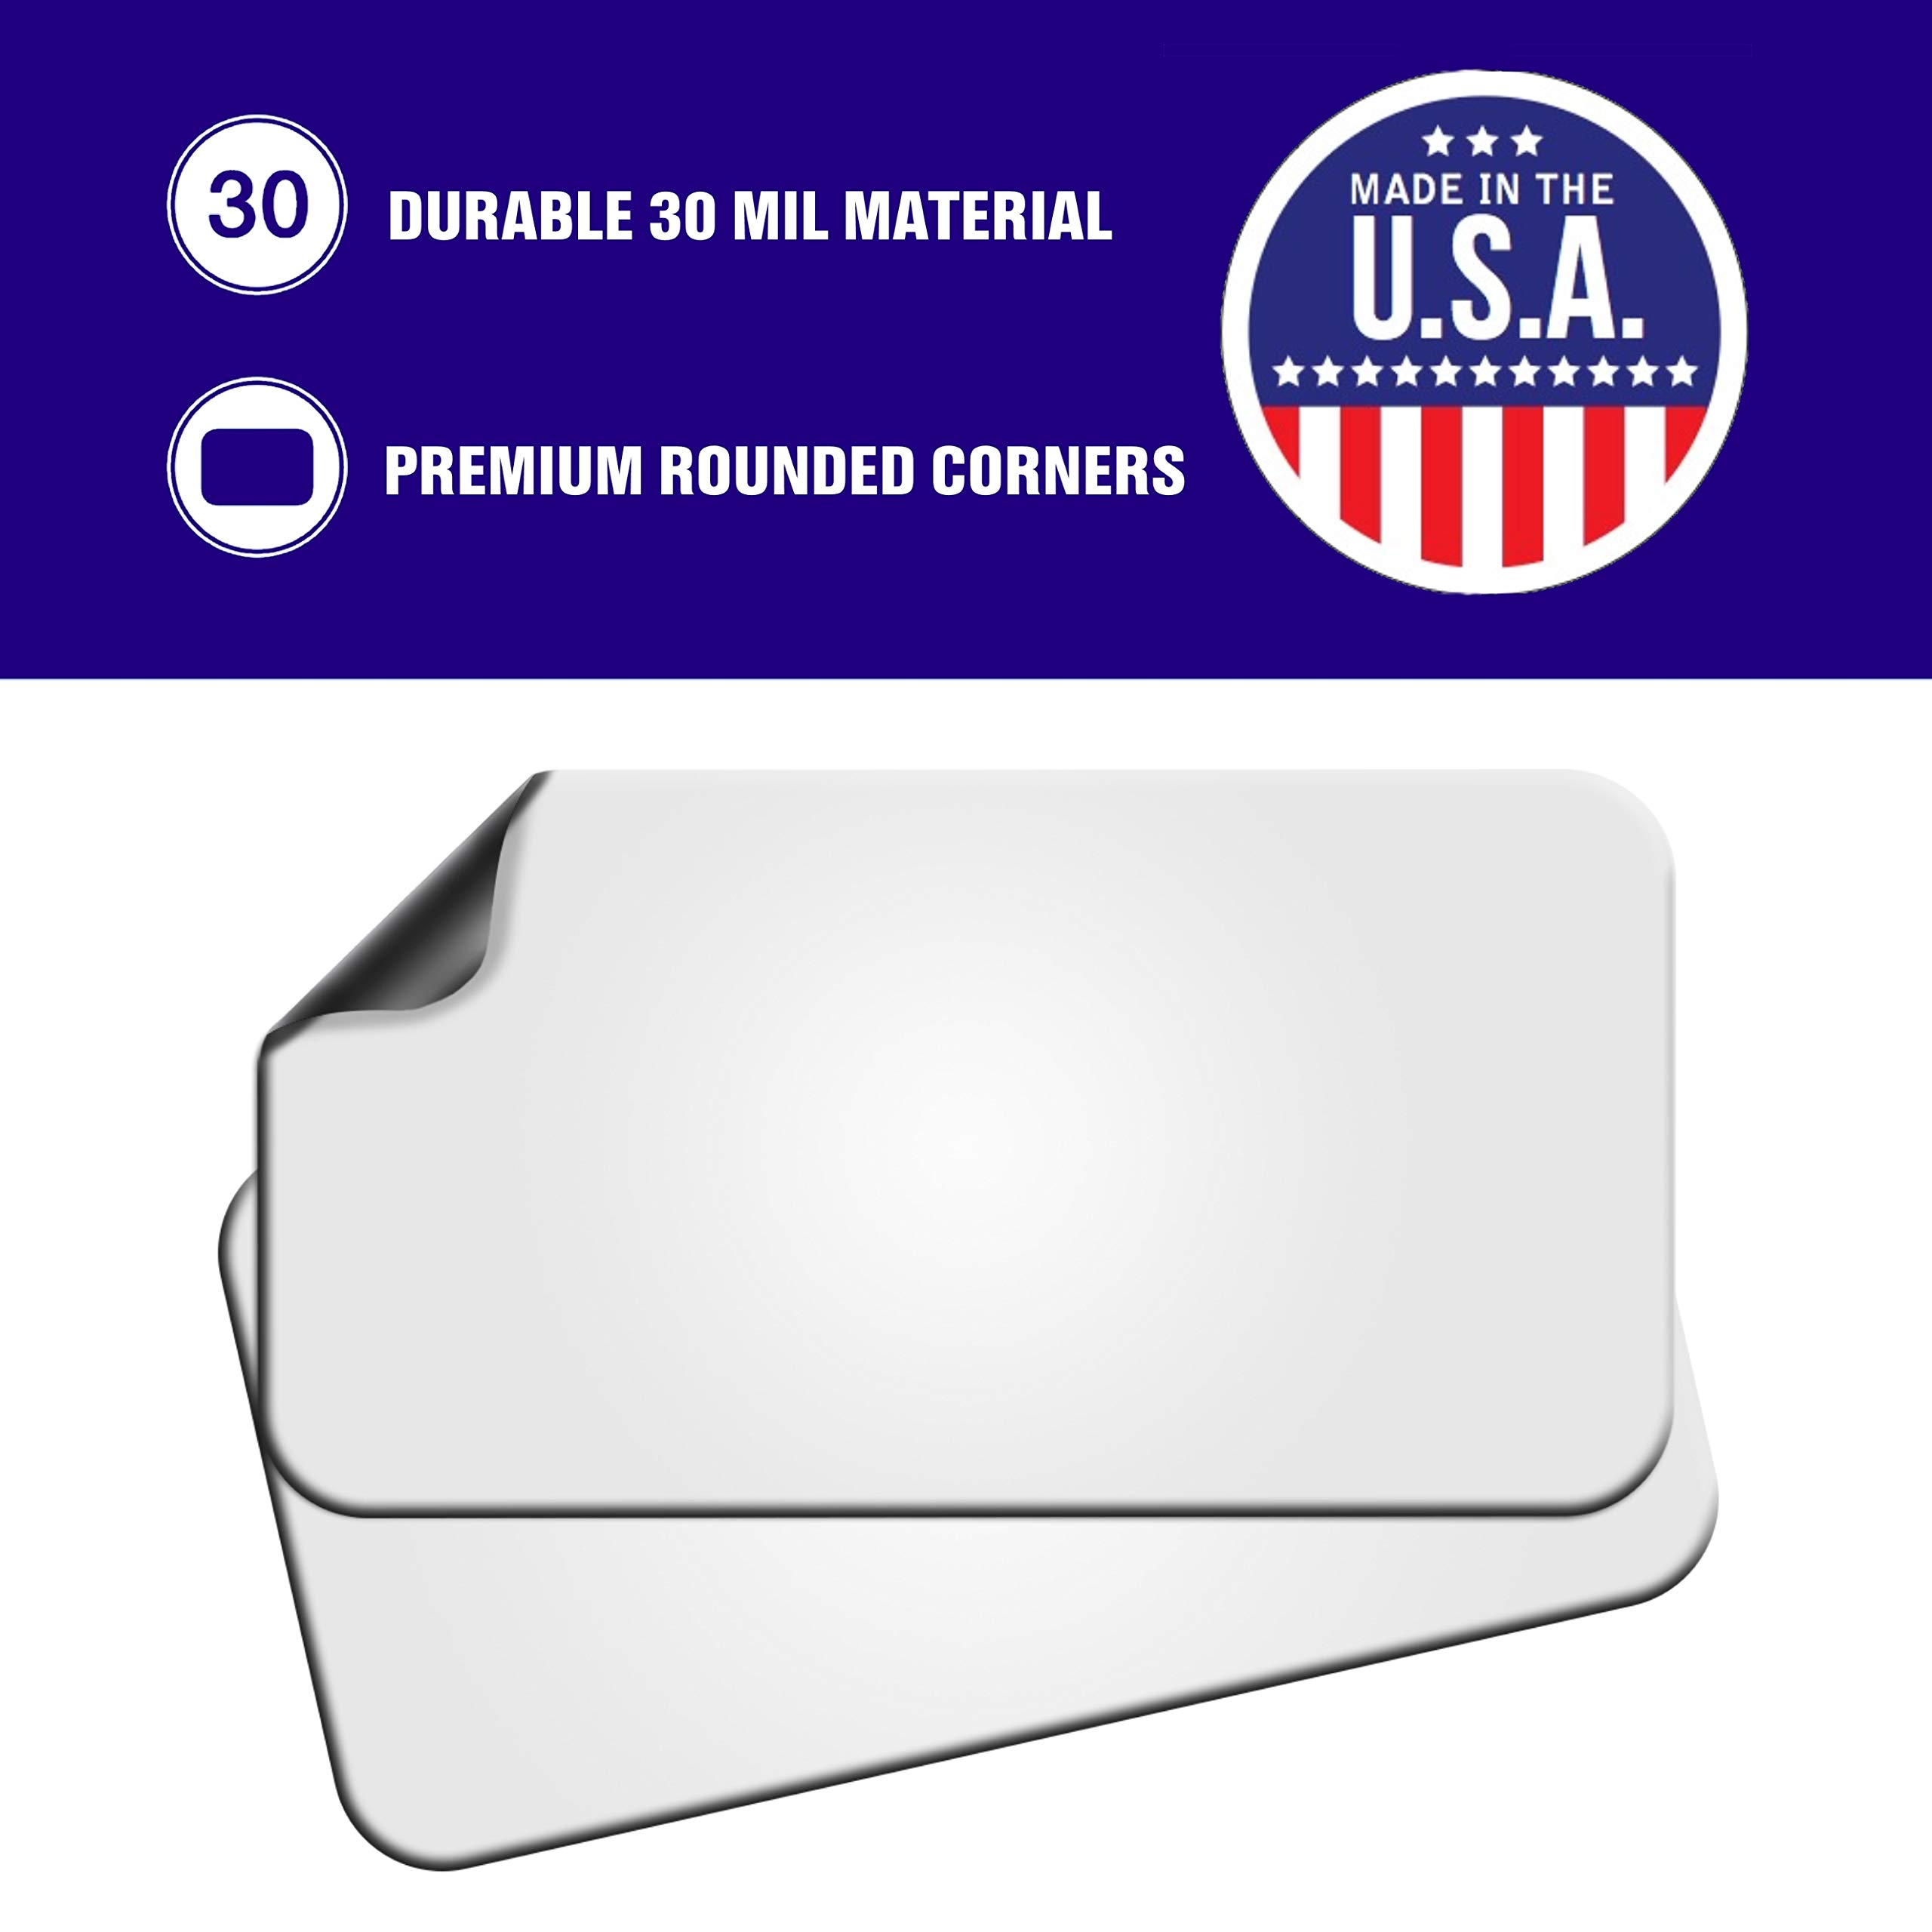 Blank Magnets (2 Pack) – Rounded Corners 12'' x 24'' Blank Car Magnet Set – Perfect Magnet for Car to Advertise Business, Cover Company Logo (for HOA), and Prevent Car Scratches & Dents – New! by SignHero (Image #4)